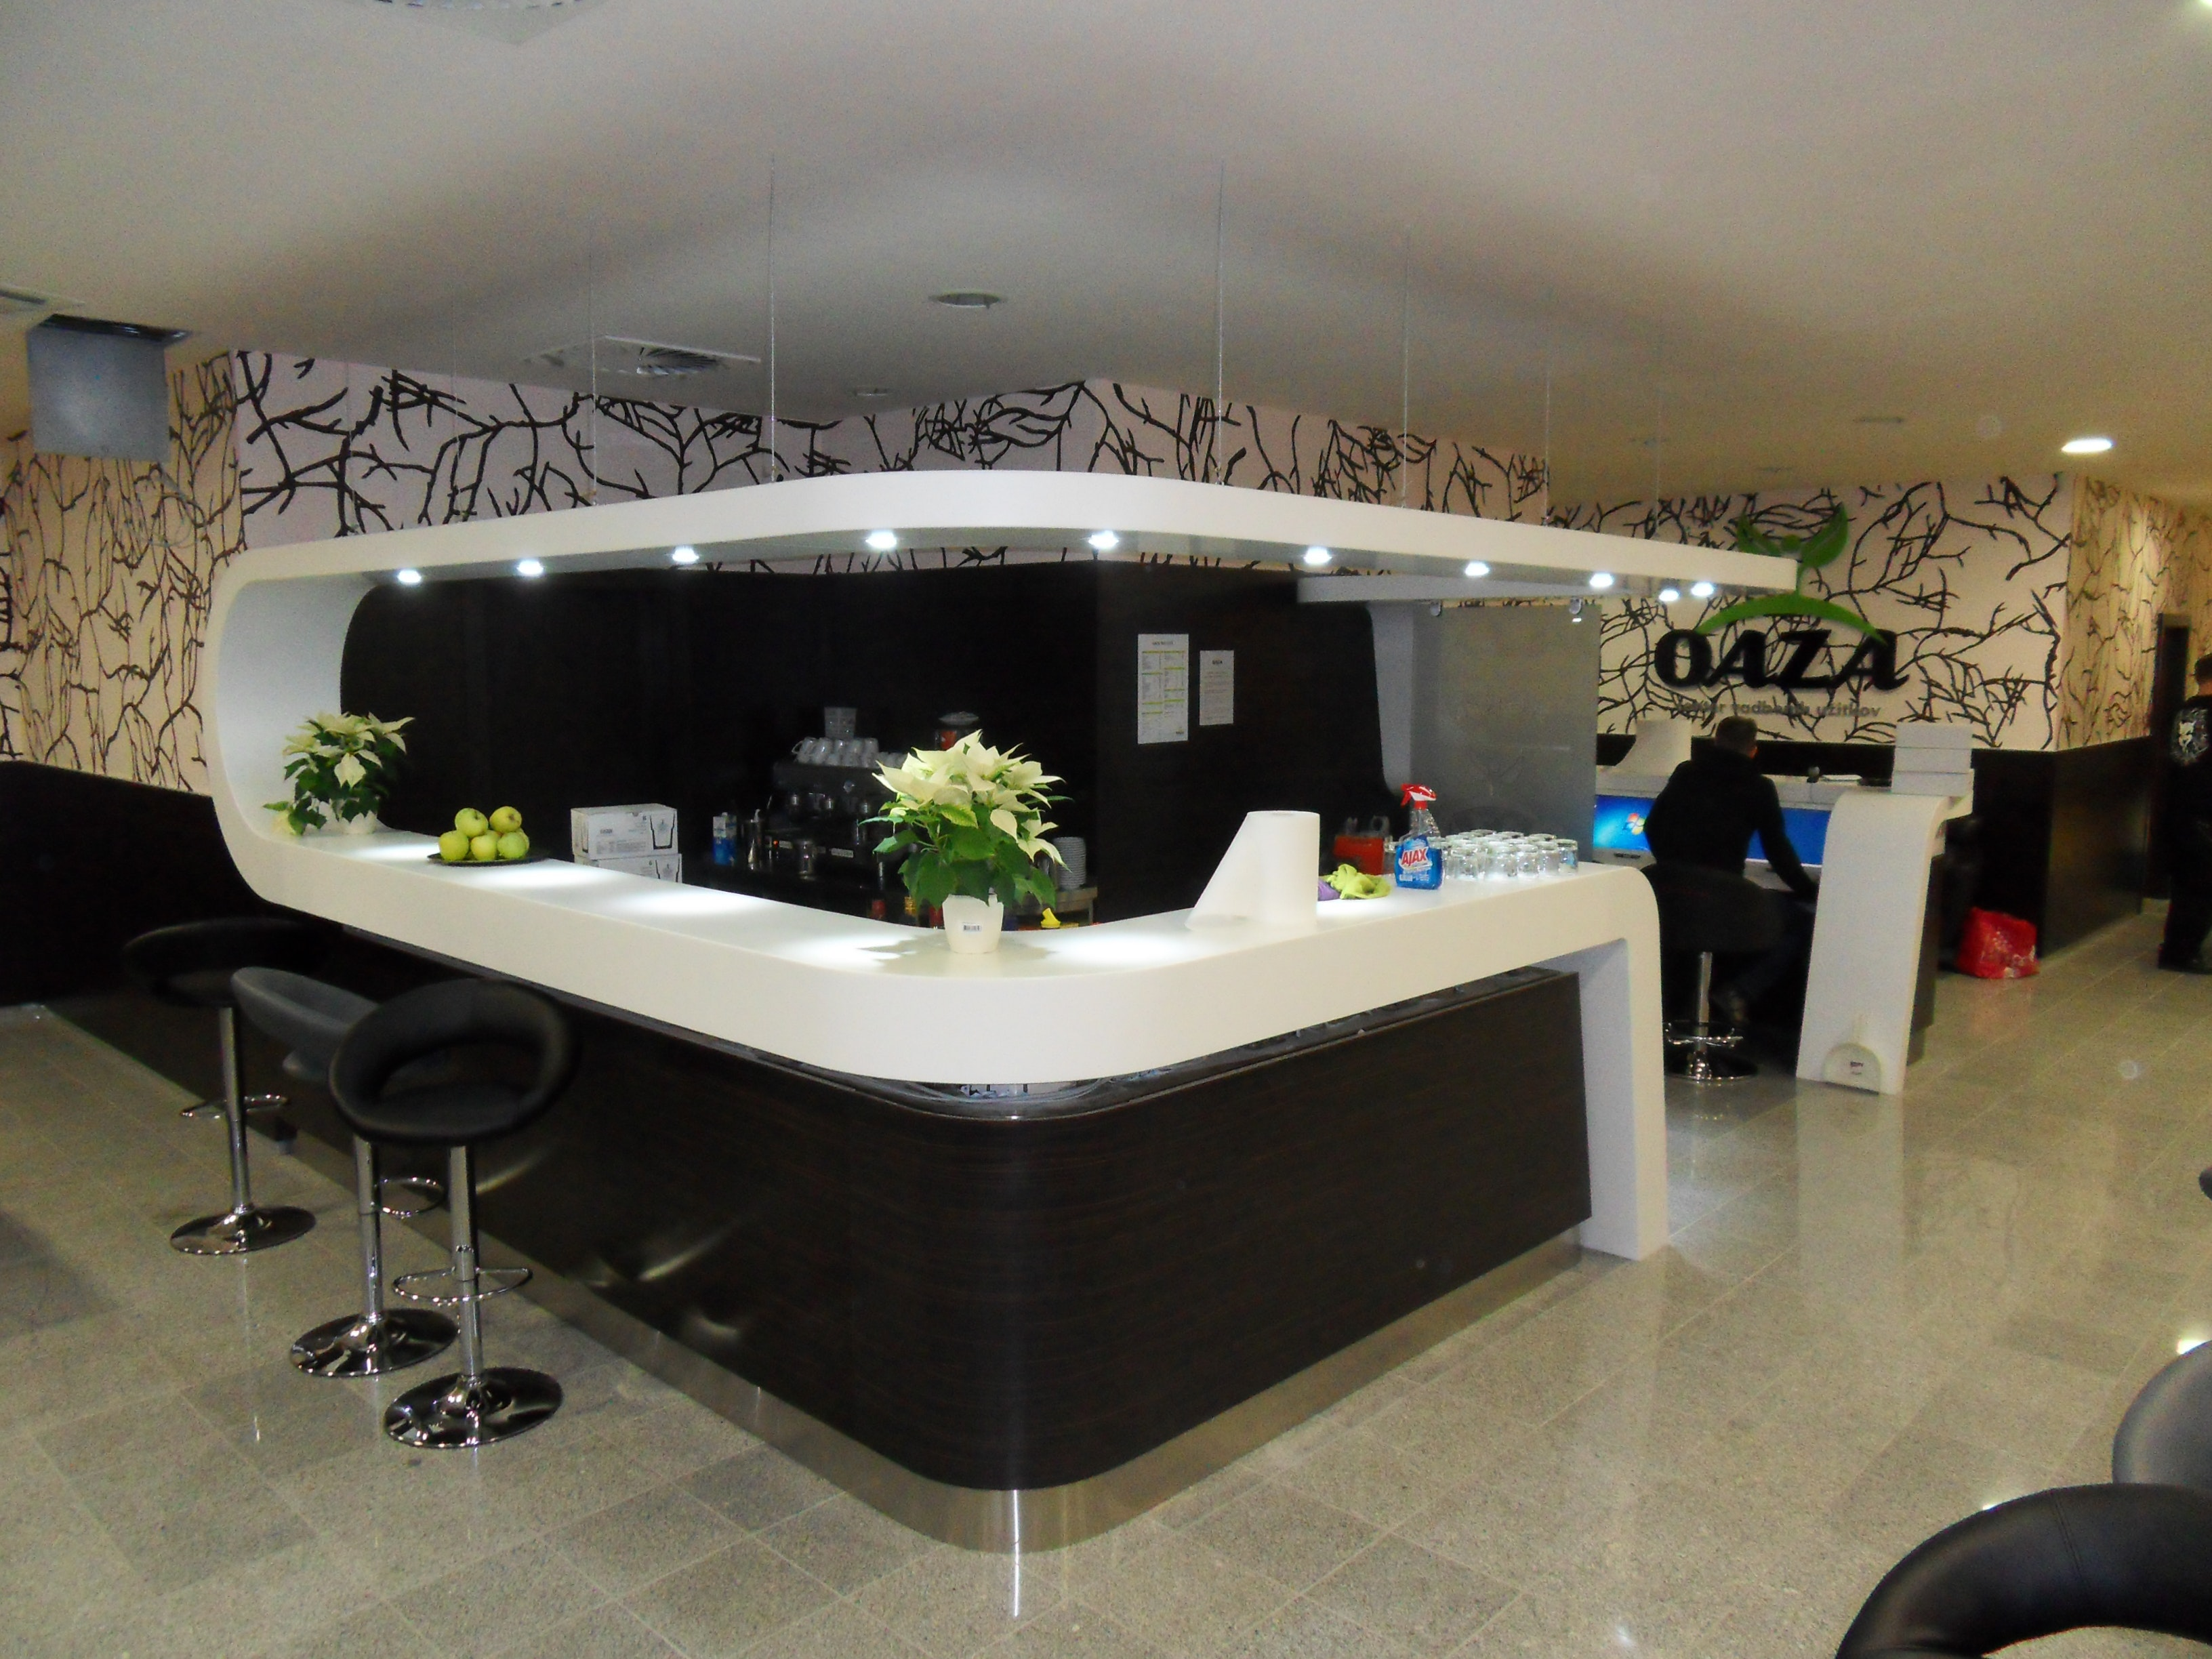 Interior Design Of Entry Hall With Bar Area In Fitness Center OAZA In BTC,  Ljubljana